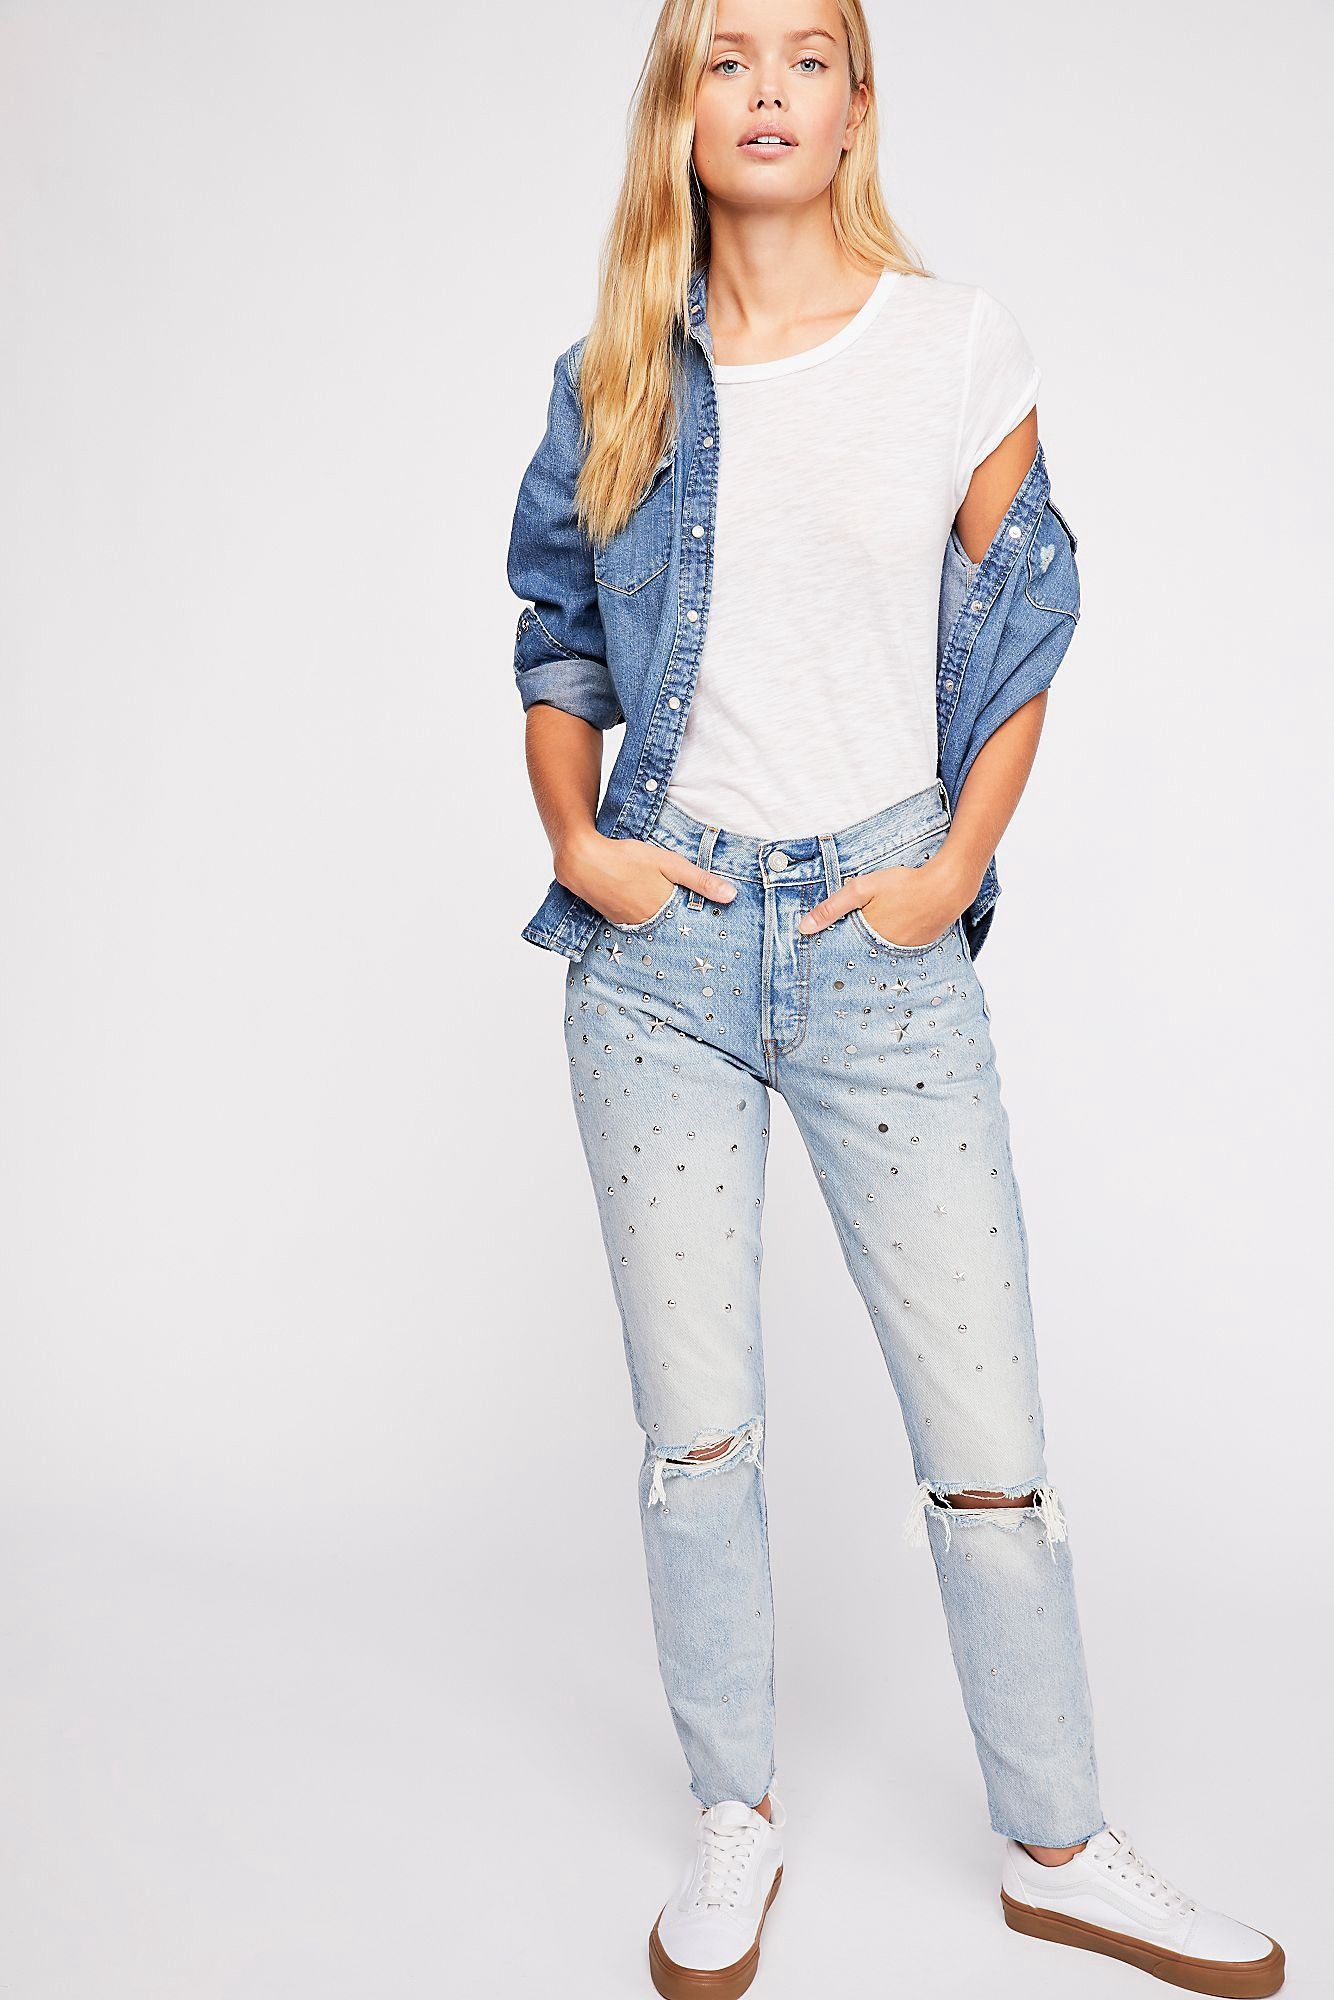 4683941e723 Free People Levi s 501 Skinny Jeans - Counting Stars 27